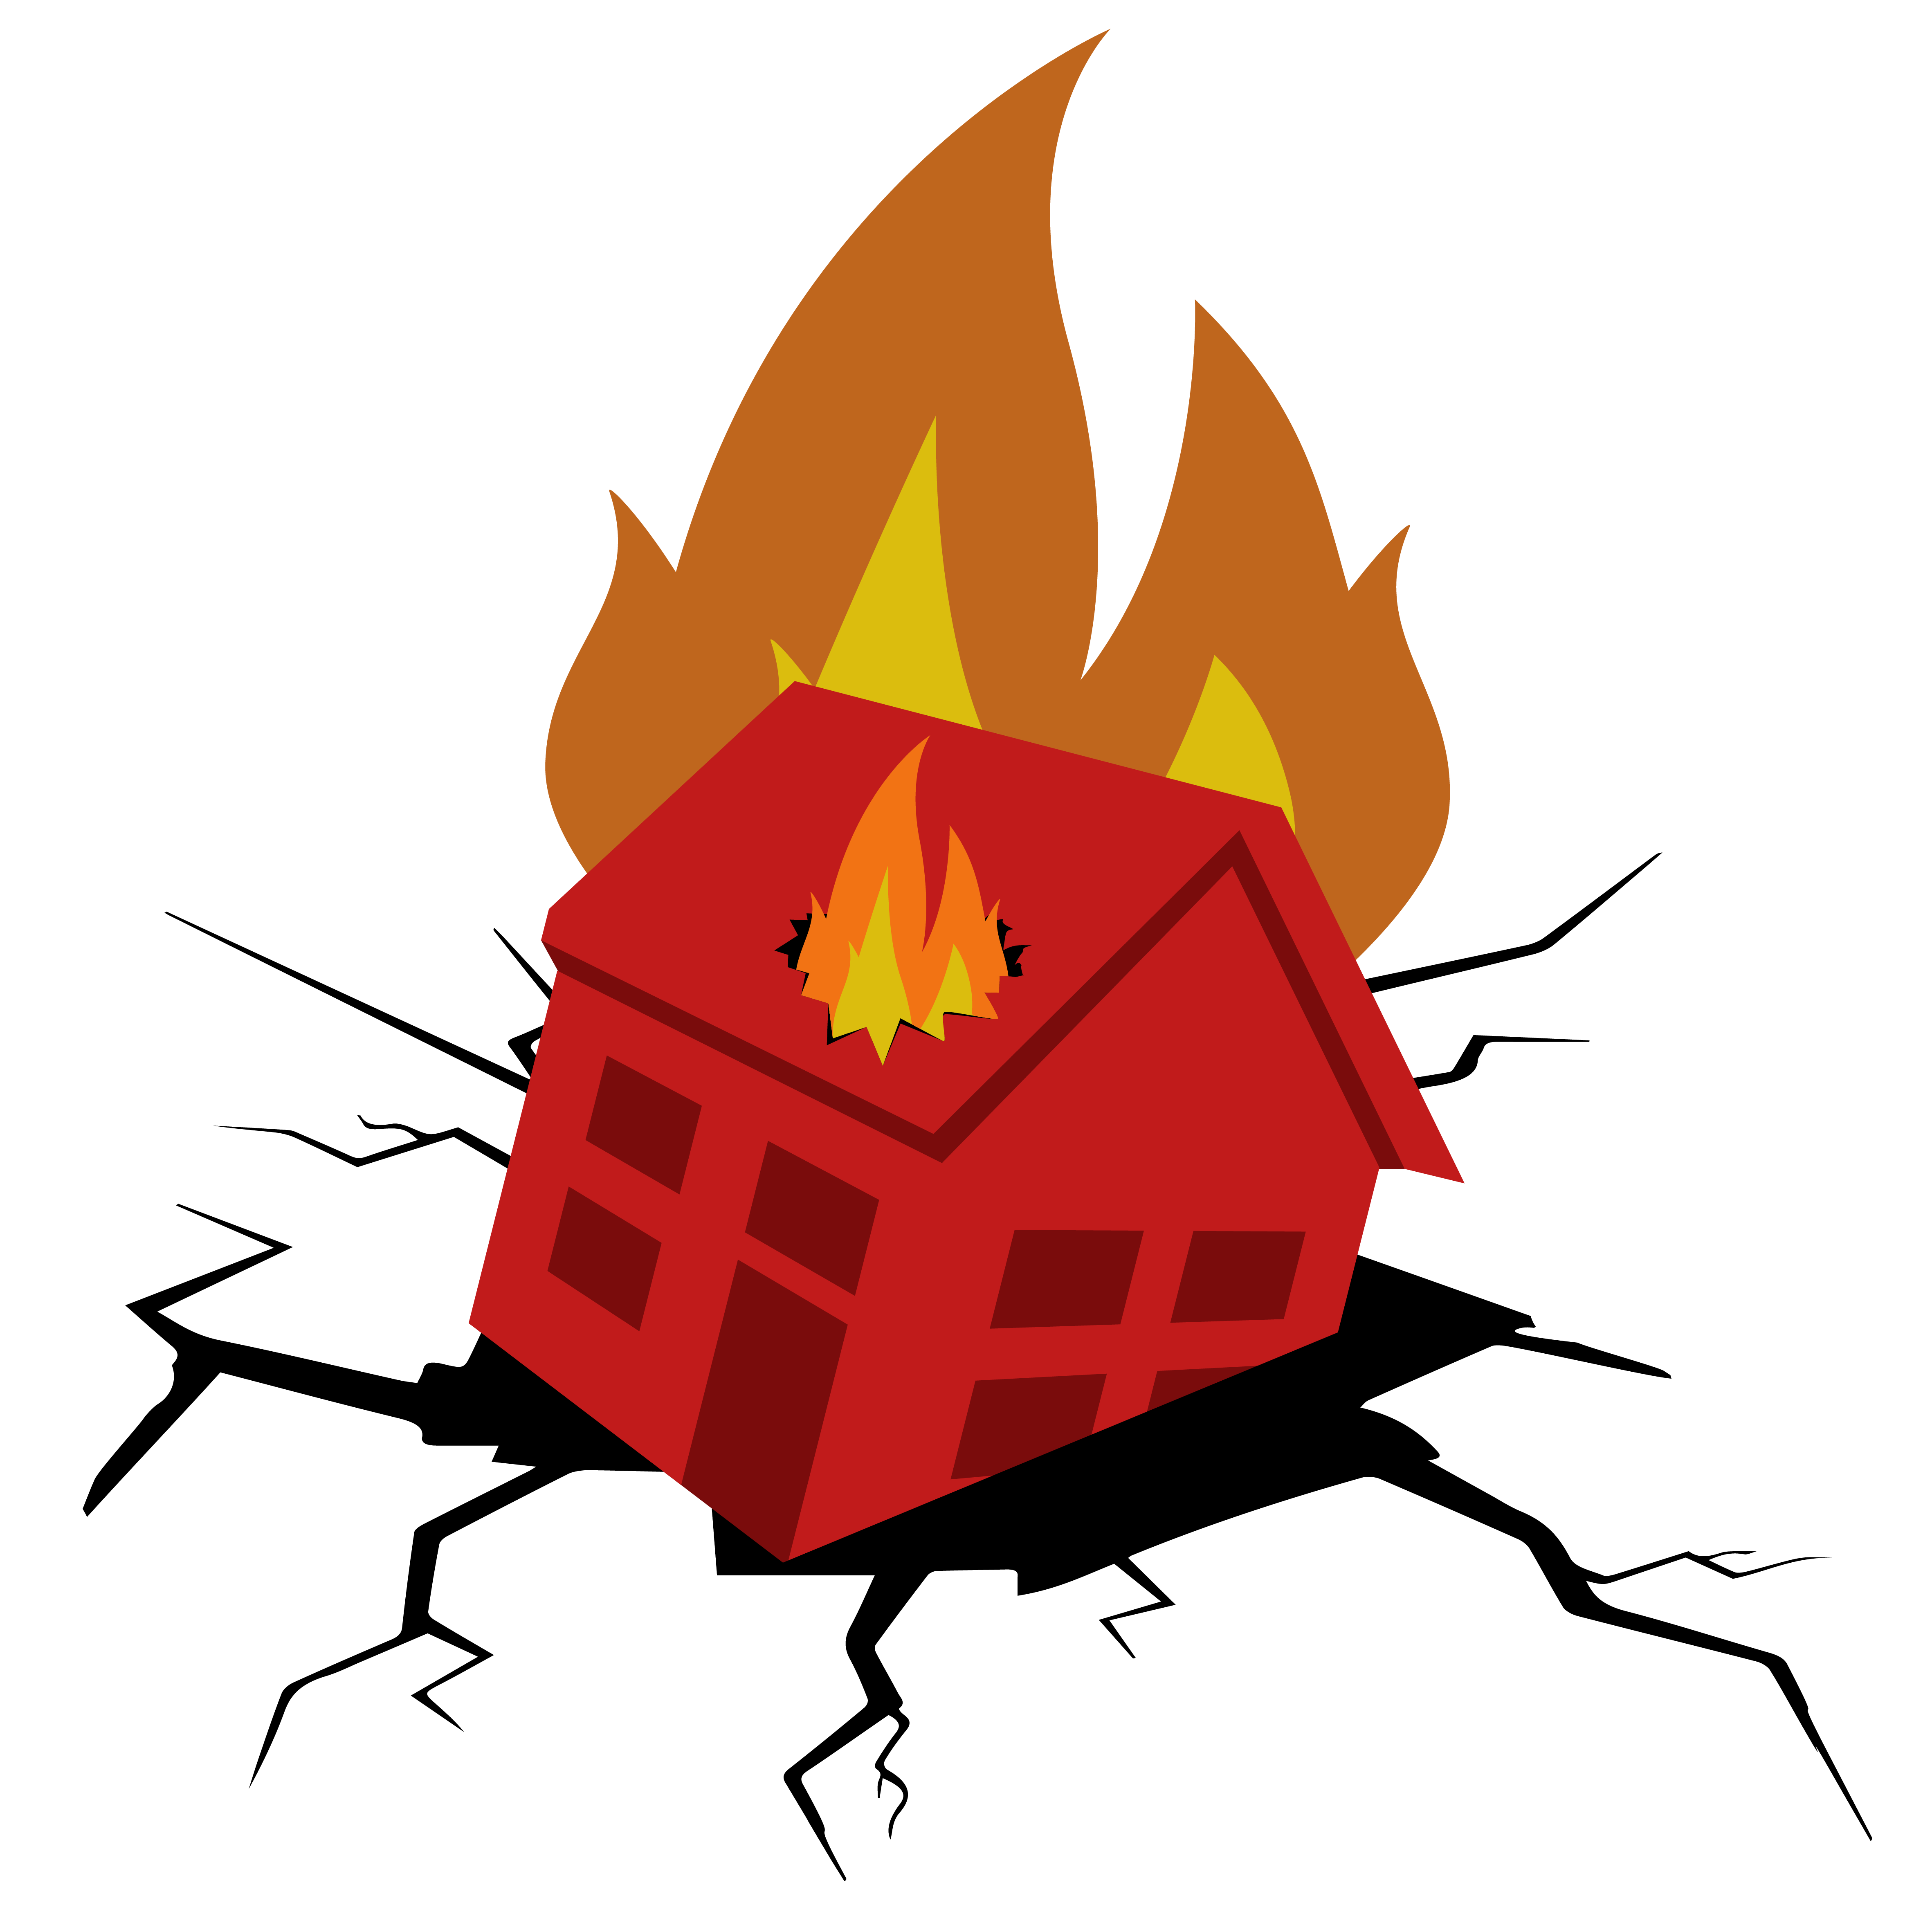 A Barratt Home from Hell | How the promise of a new build home was ... picture freeuse download